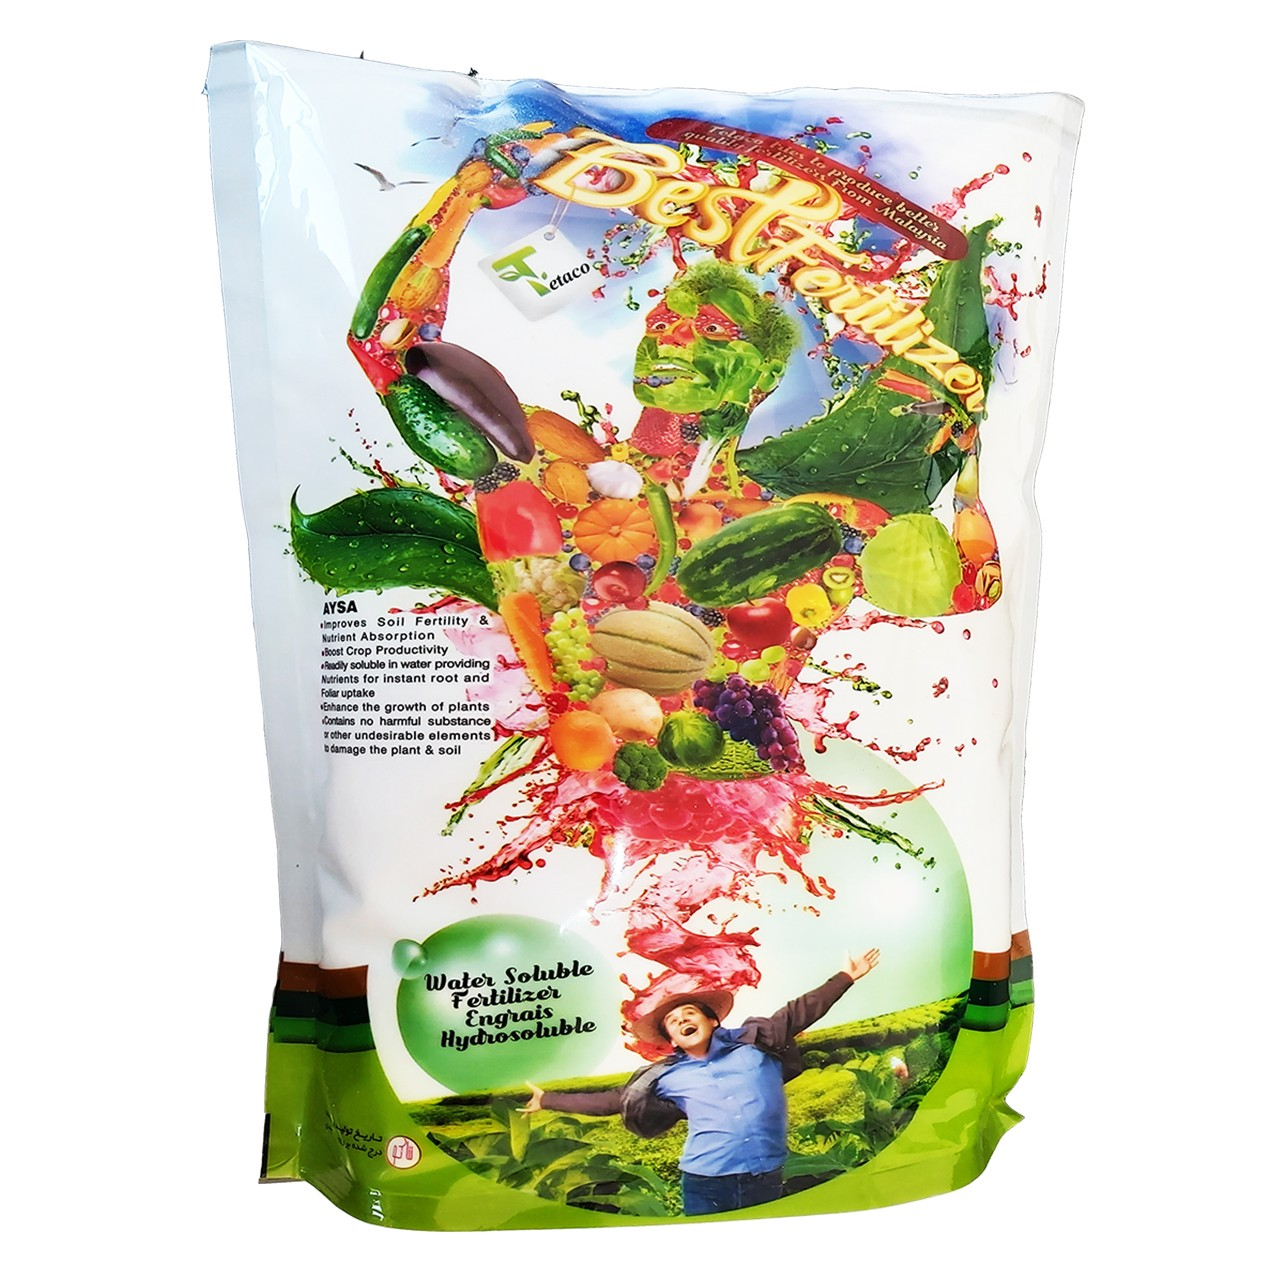 image number  1 products  AYSA strawberry fertilizer weighs 1 kg